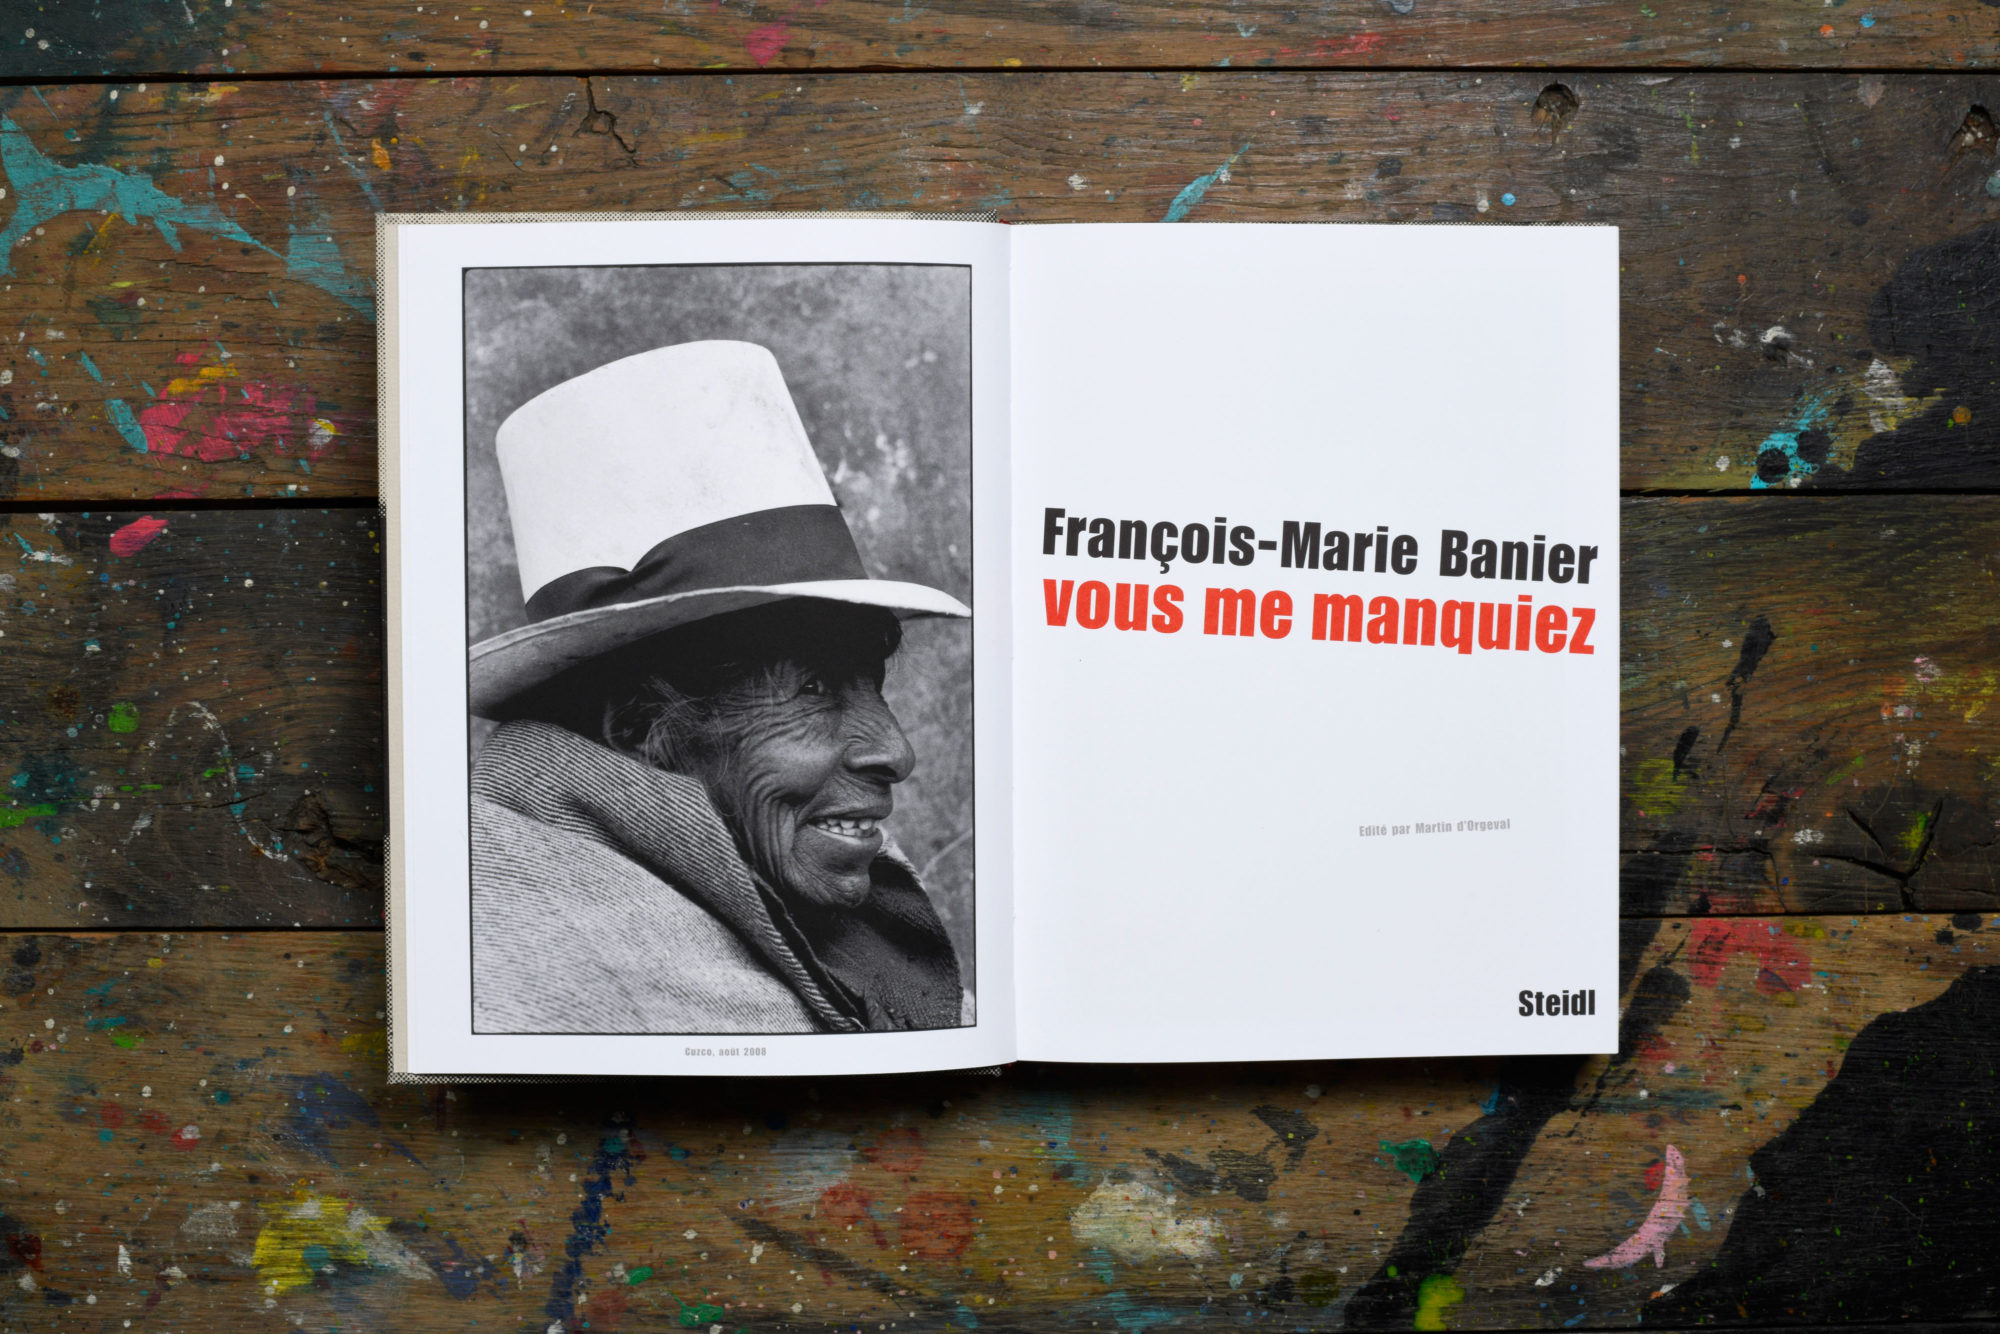 I missed you - François-Marie Banier